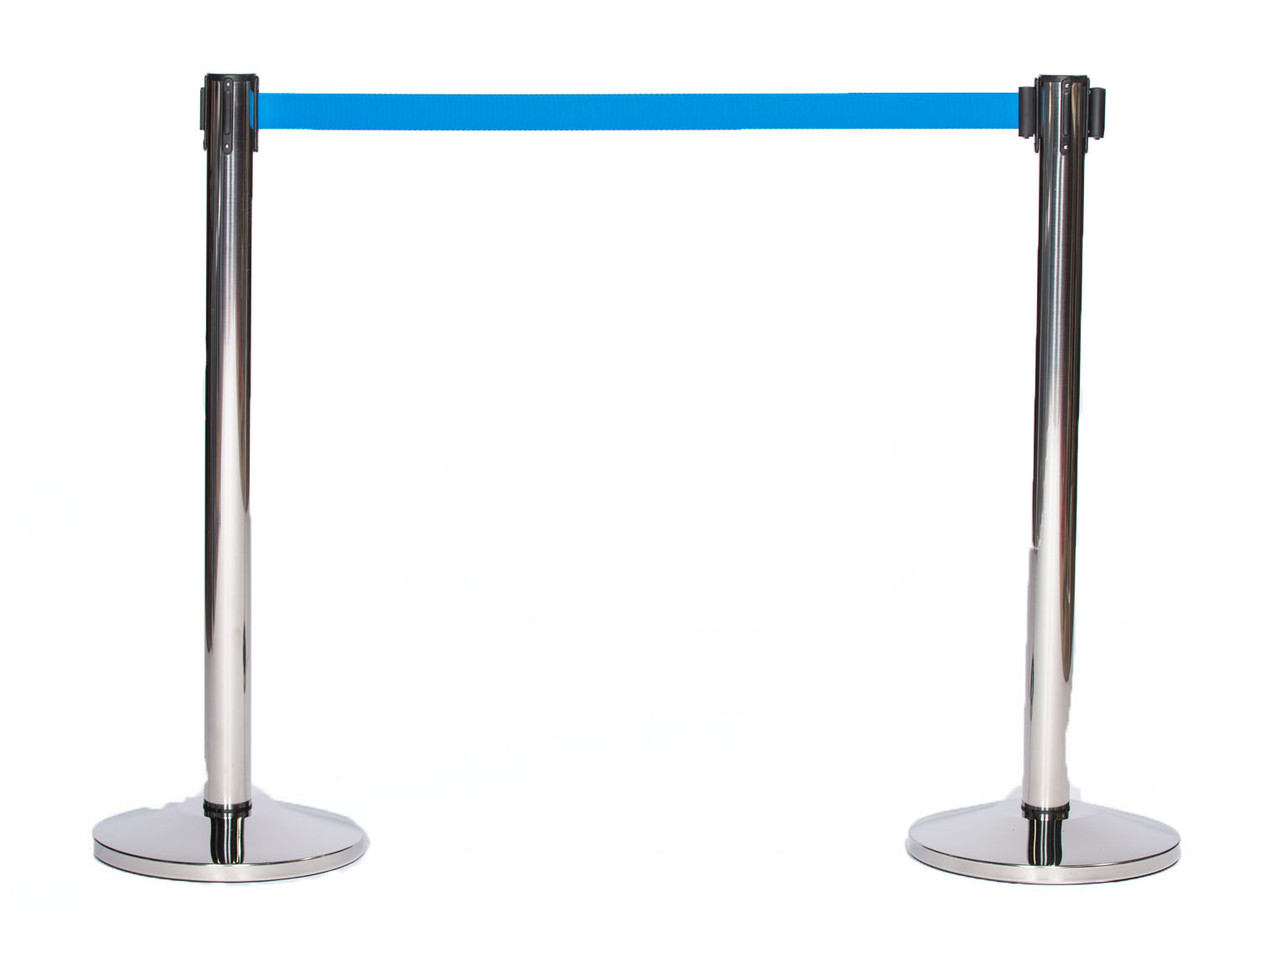 Top Selling Pair of Chrome or Stainless Retractable Belt Stanchions with a 10' Light Blue Belt